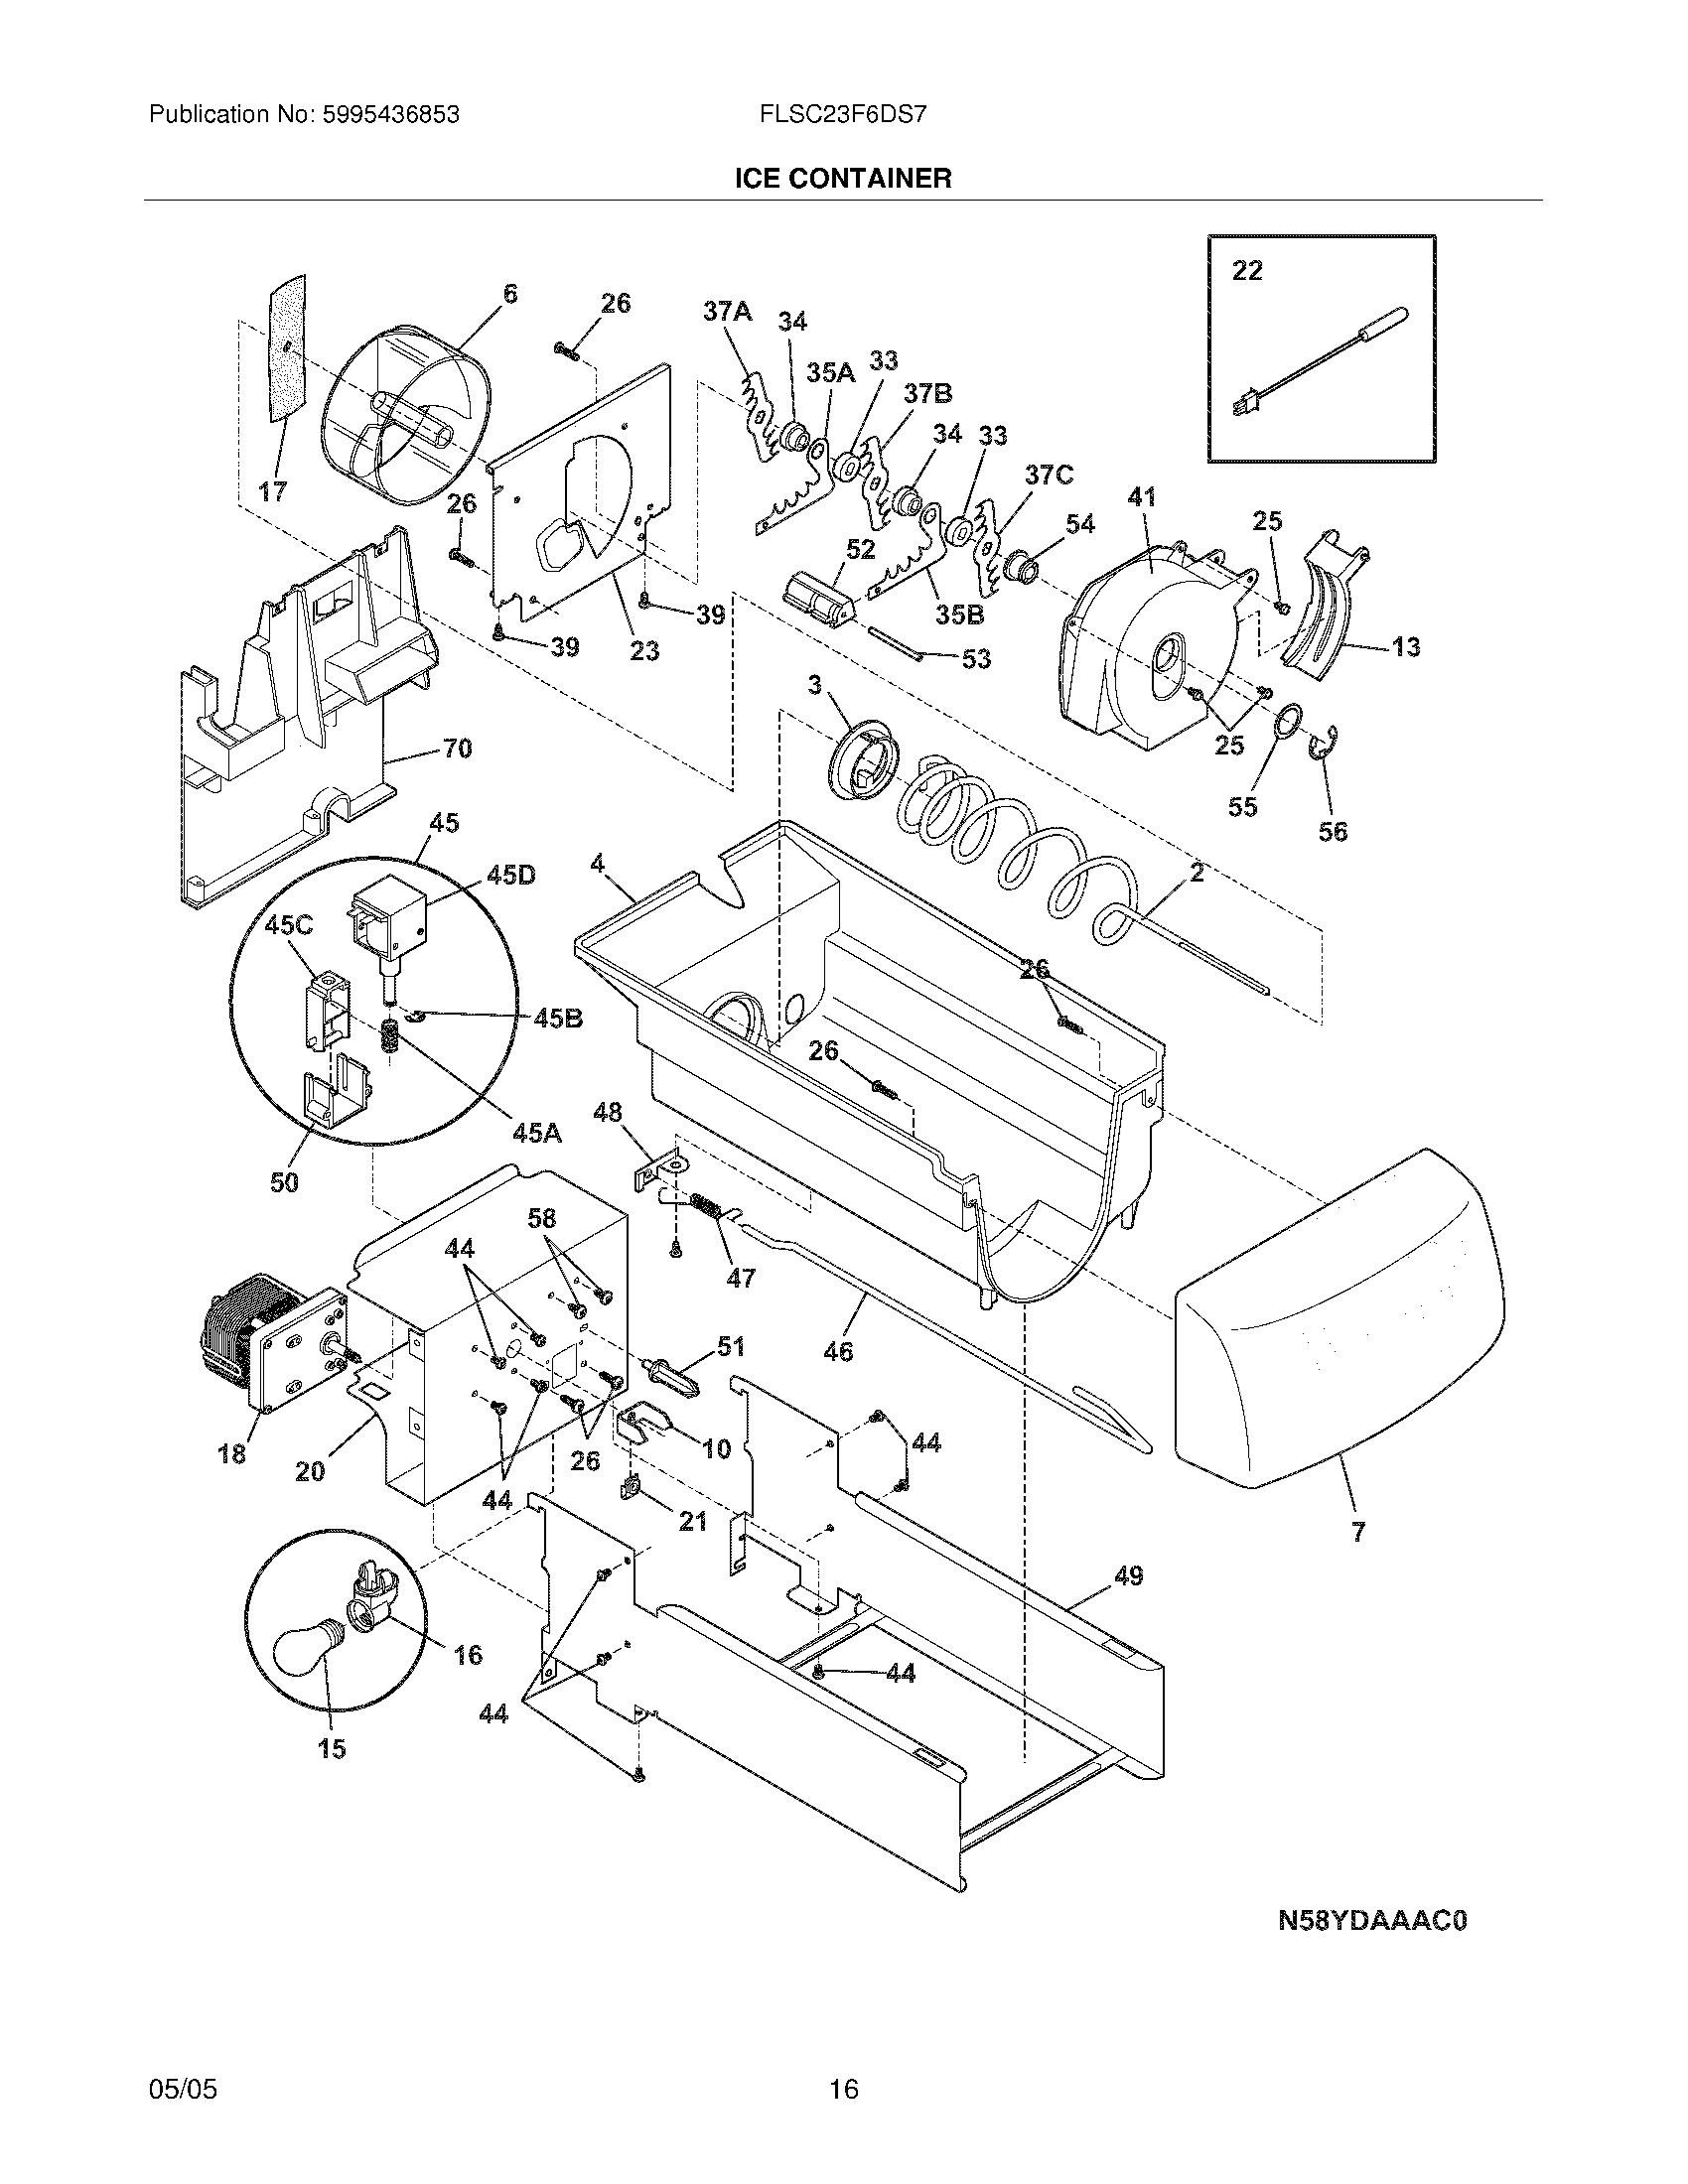 ElectroluxImg_19000101 20150717_00081567?width\\=1000 wiring diagram for ice maker the wiring diagram,Home Electrical Wiring Diagram Maker